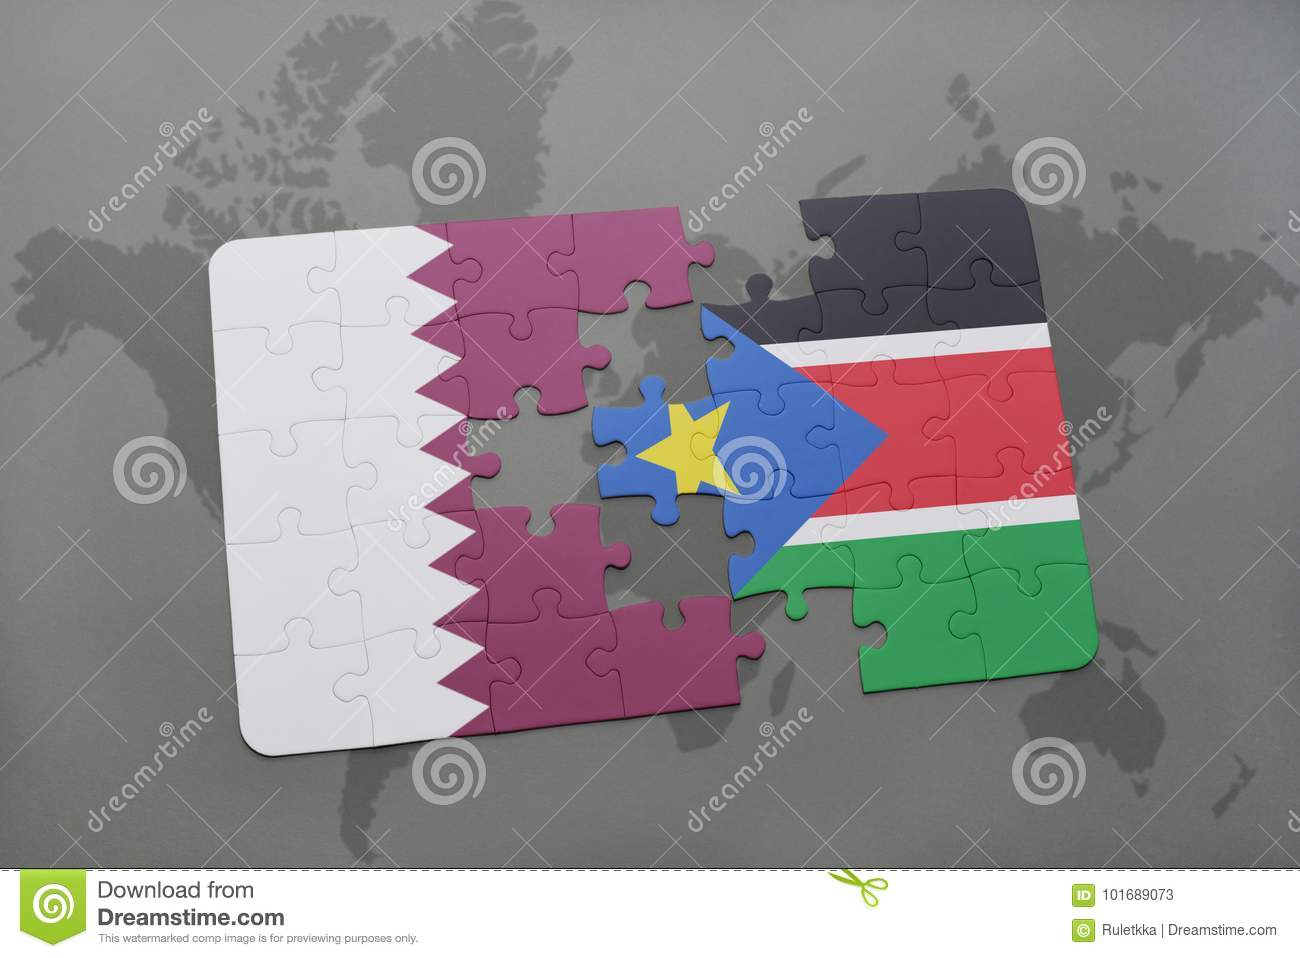 Puzzle With The National Flag Of Qatar And South Sudan On A World ...